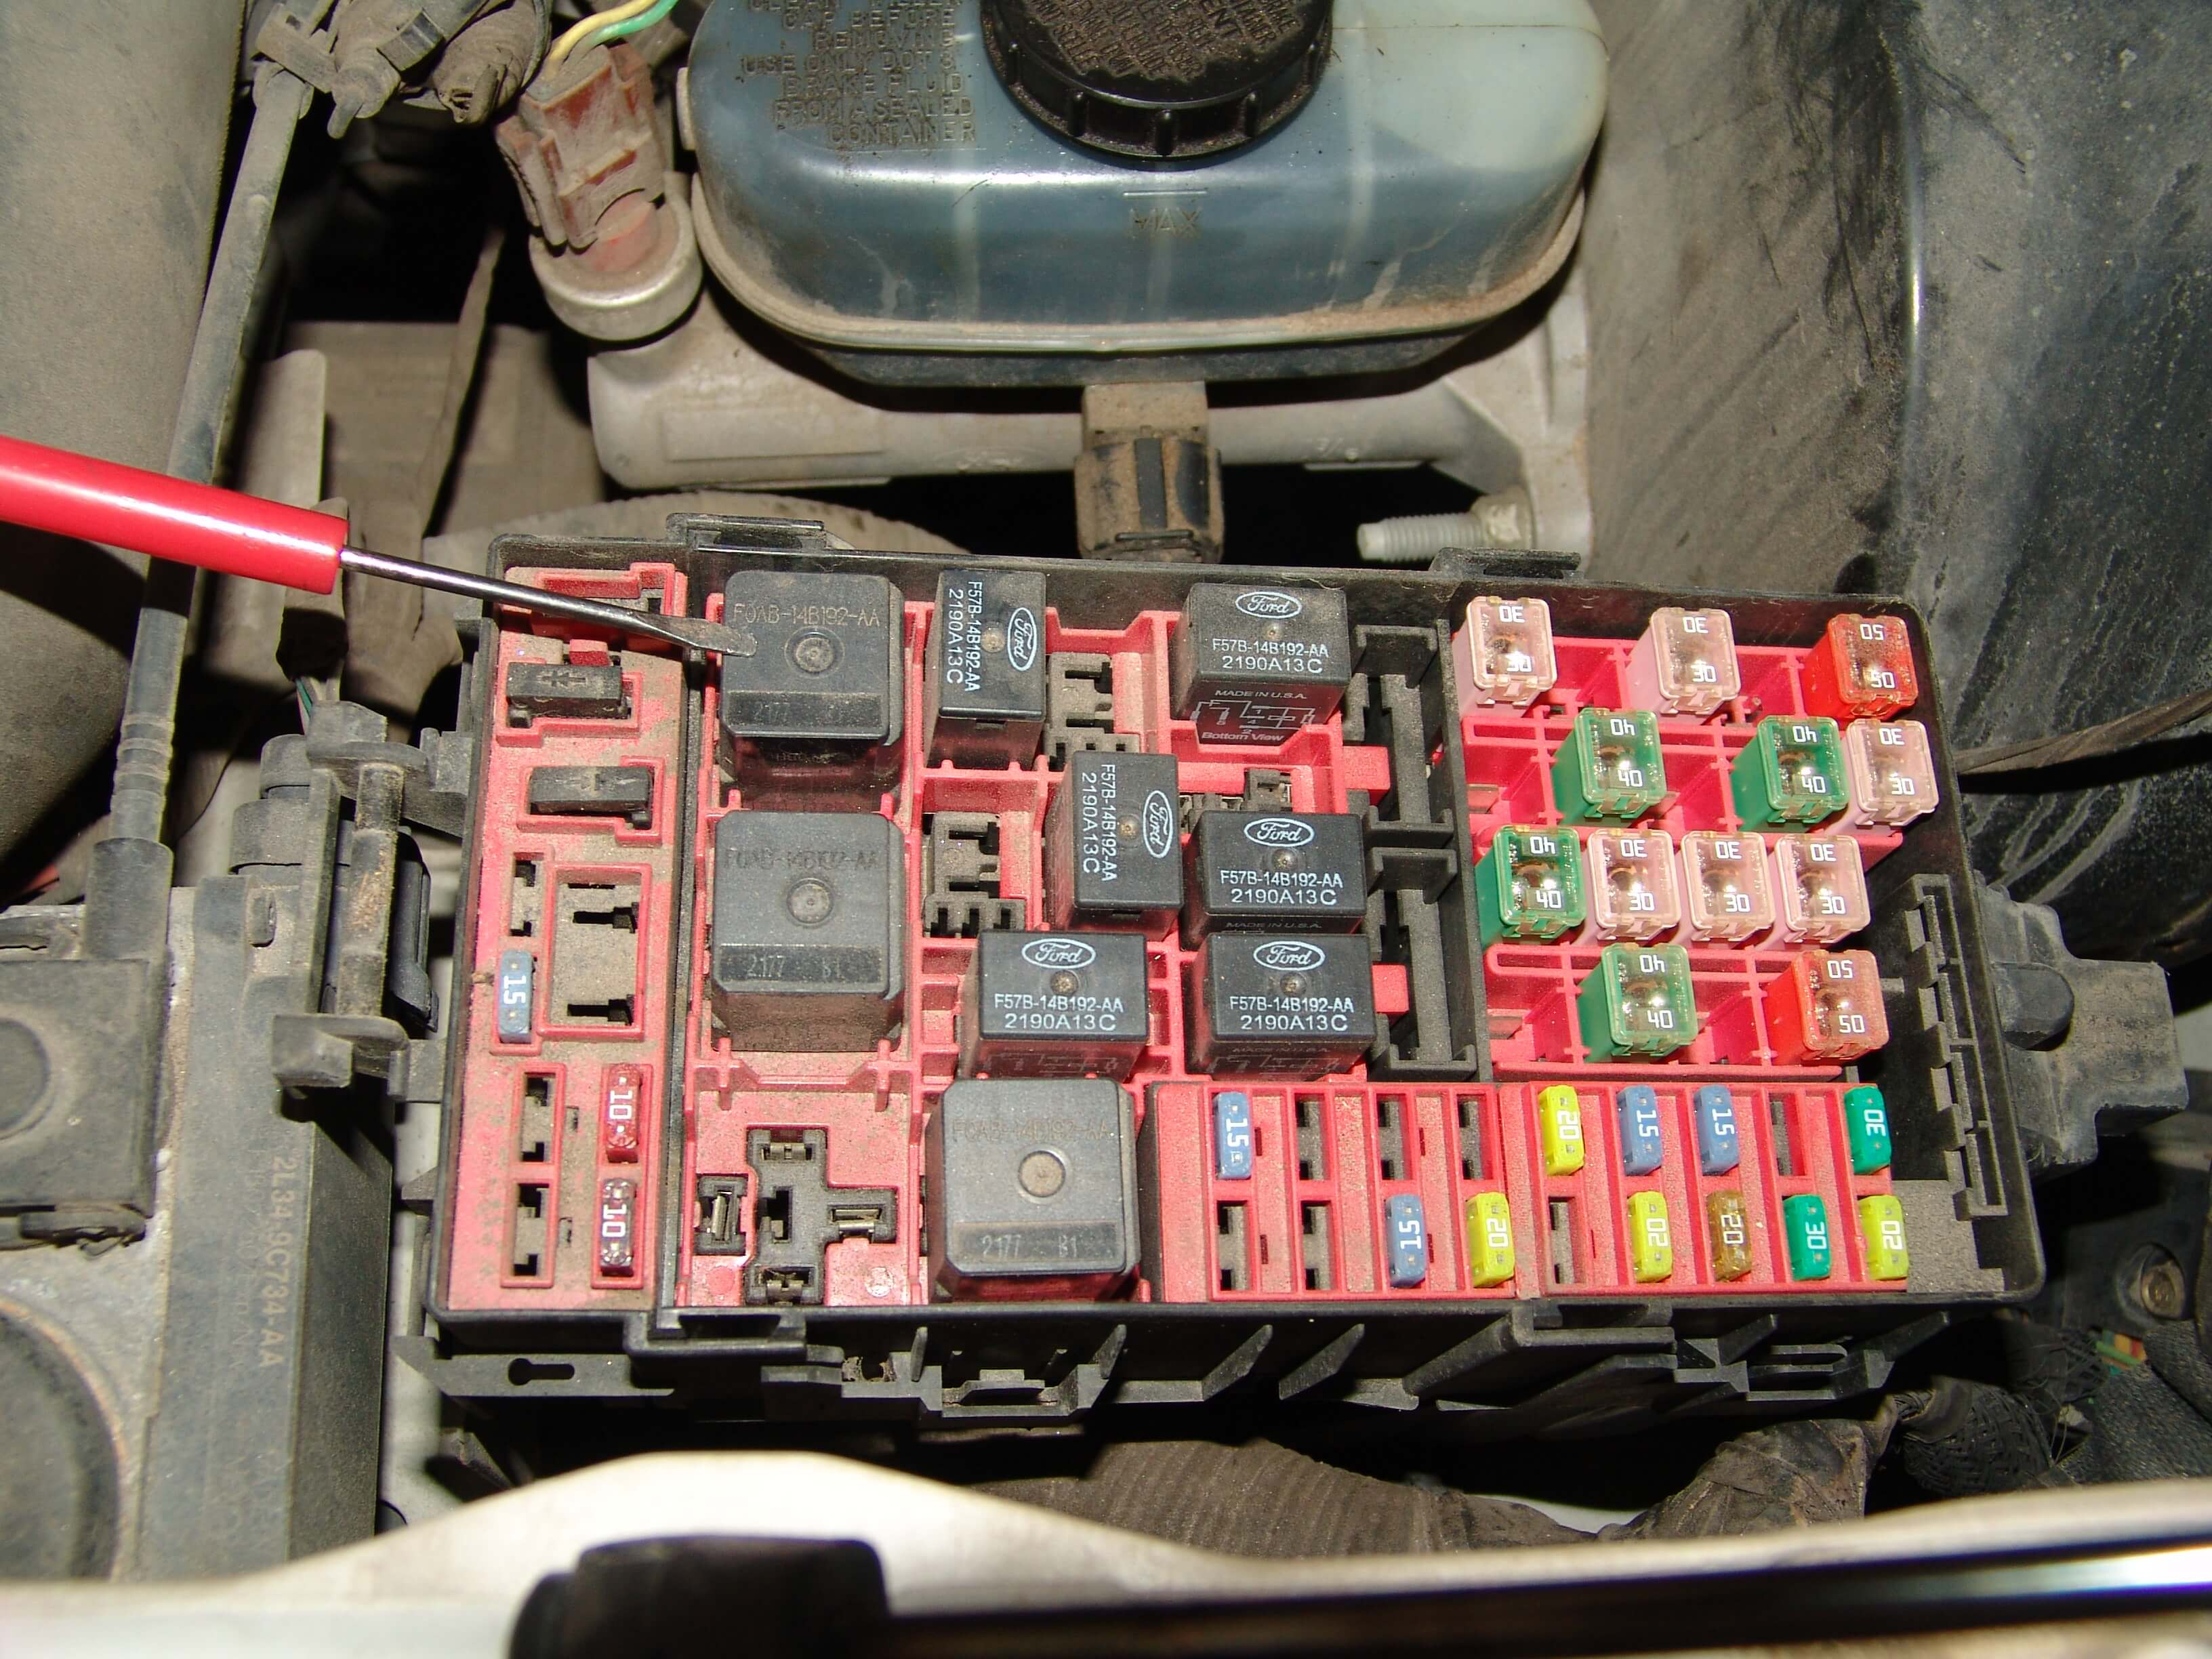 Testing the output signal of the PCM power relay can also be done at  several fuses in the underhood fuse/relay box. Fuse number 18.